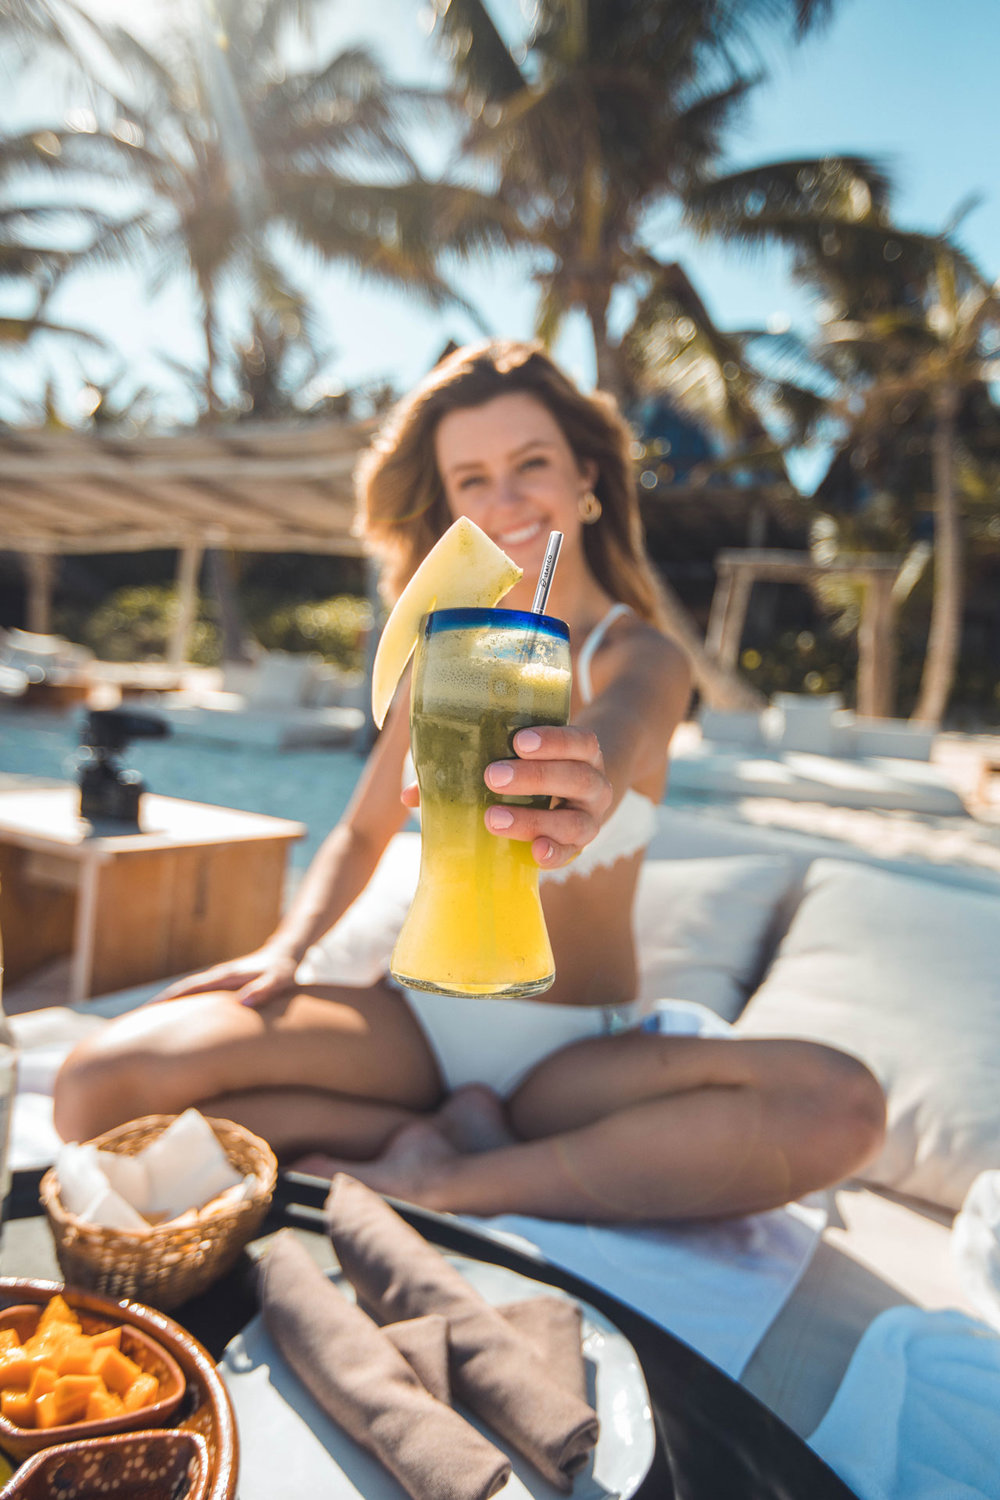 MONEY BACK GUARANTEE - At Leafico we want you to be SATISFIED with your purchase. If you do not absolutely love your eco-friendly straws we will refund your money.